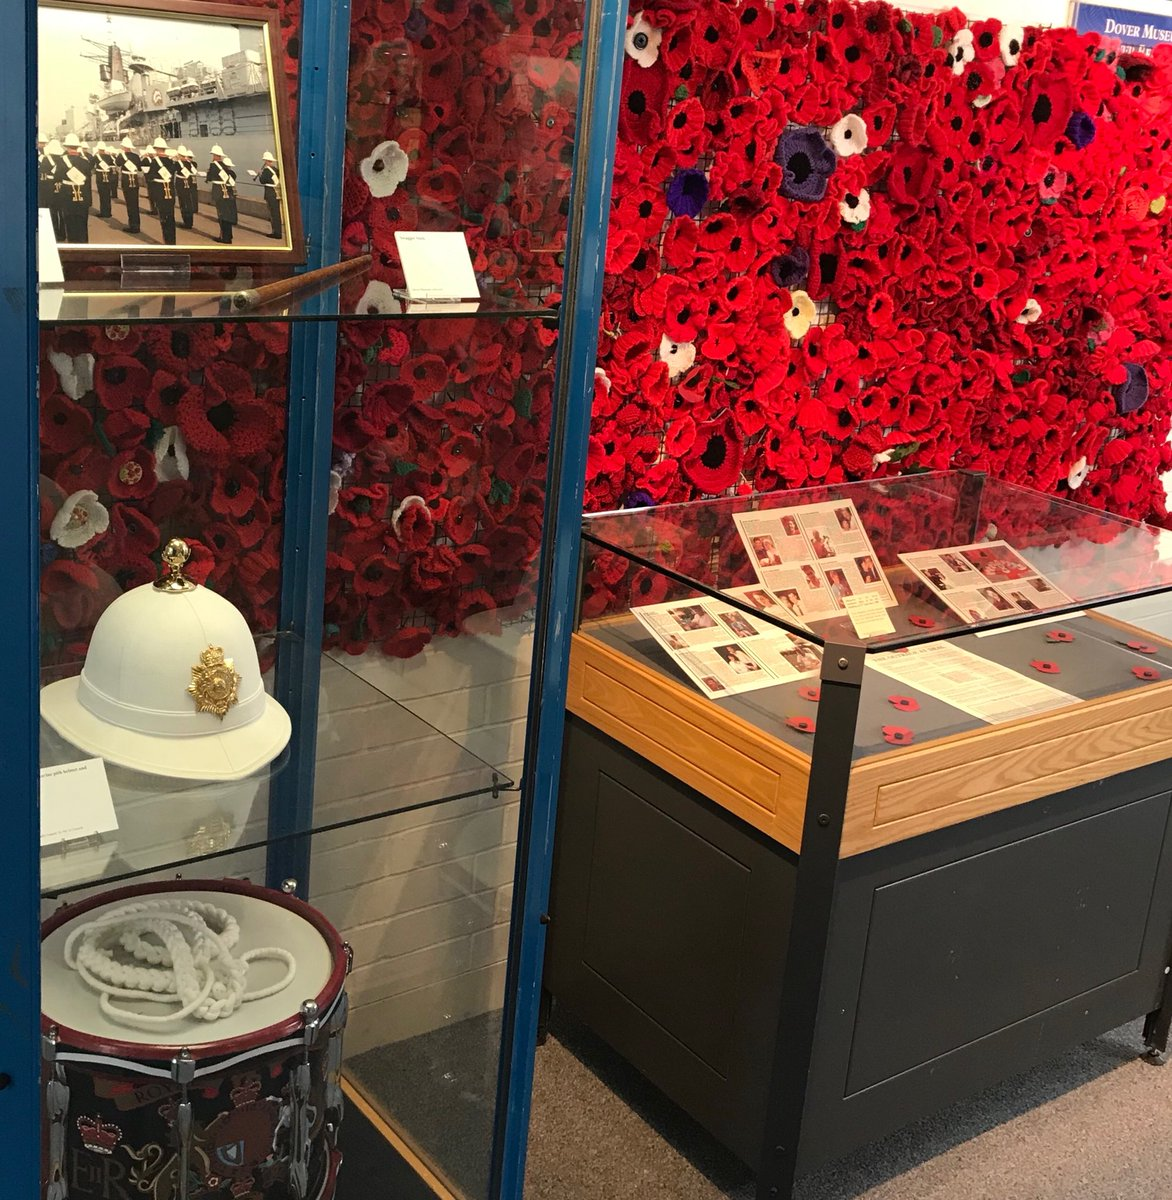 'Eleven Empty Spaces'  Exhibition at Dover Museum. In memory of 11 Royal Marine Musicians who tragically lost their lives. #1989 @RMBandService  @DealBandstand #wewillrememberthem <br>http://pic.twitter.com/D1Qg7e7NNt